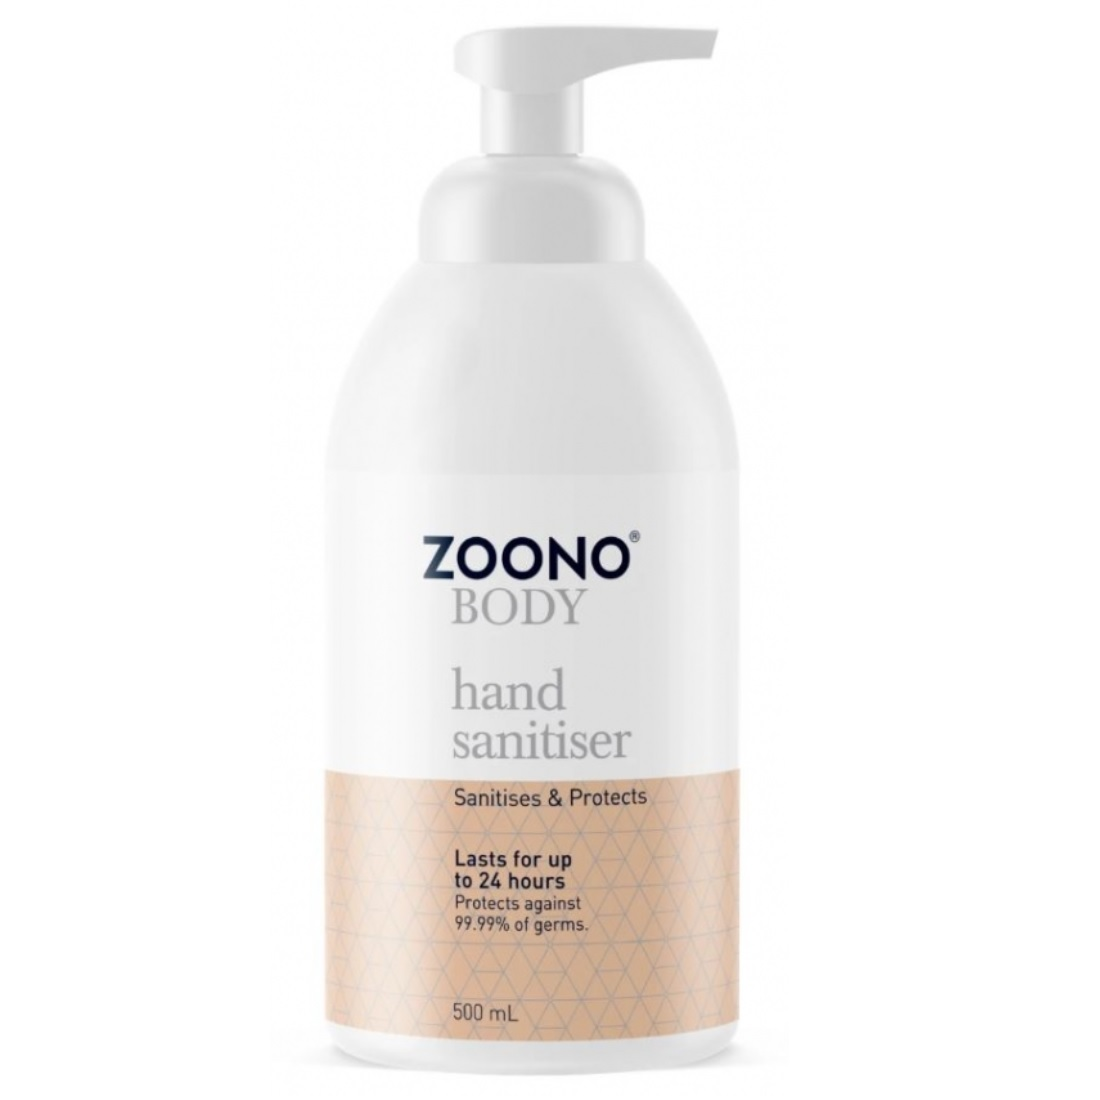 Zoono-Germfree-24hour-Hand-Sanitiser-Virus-Protector-500ml